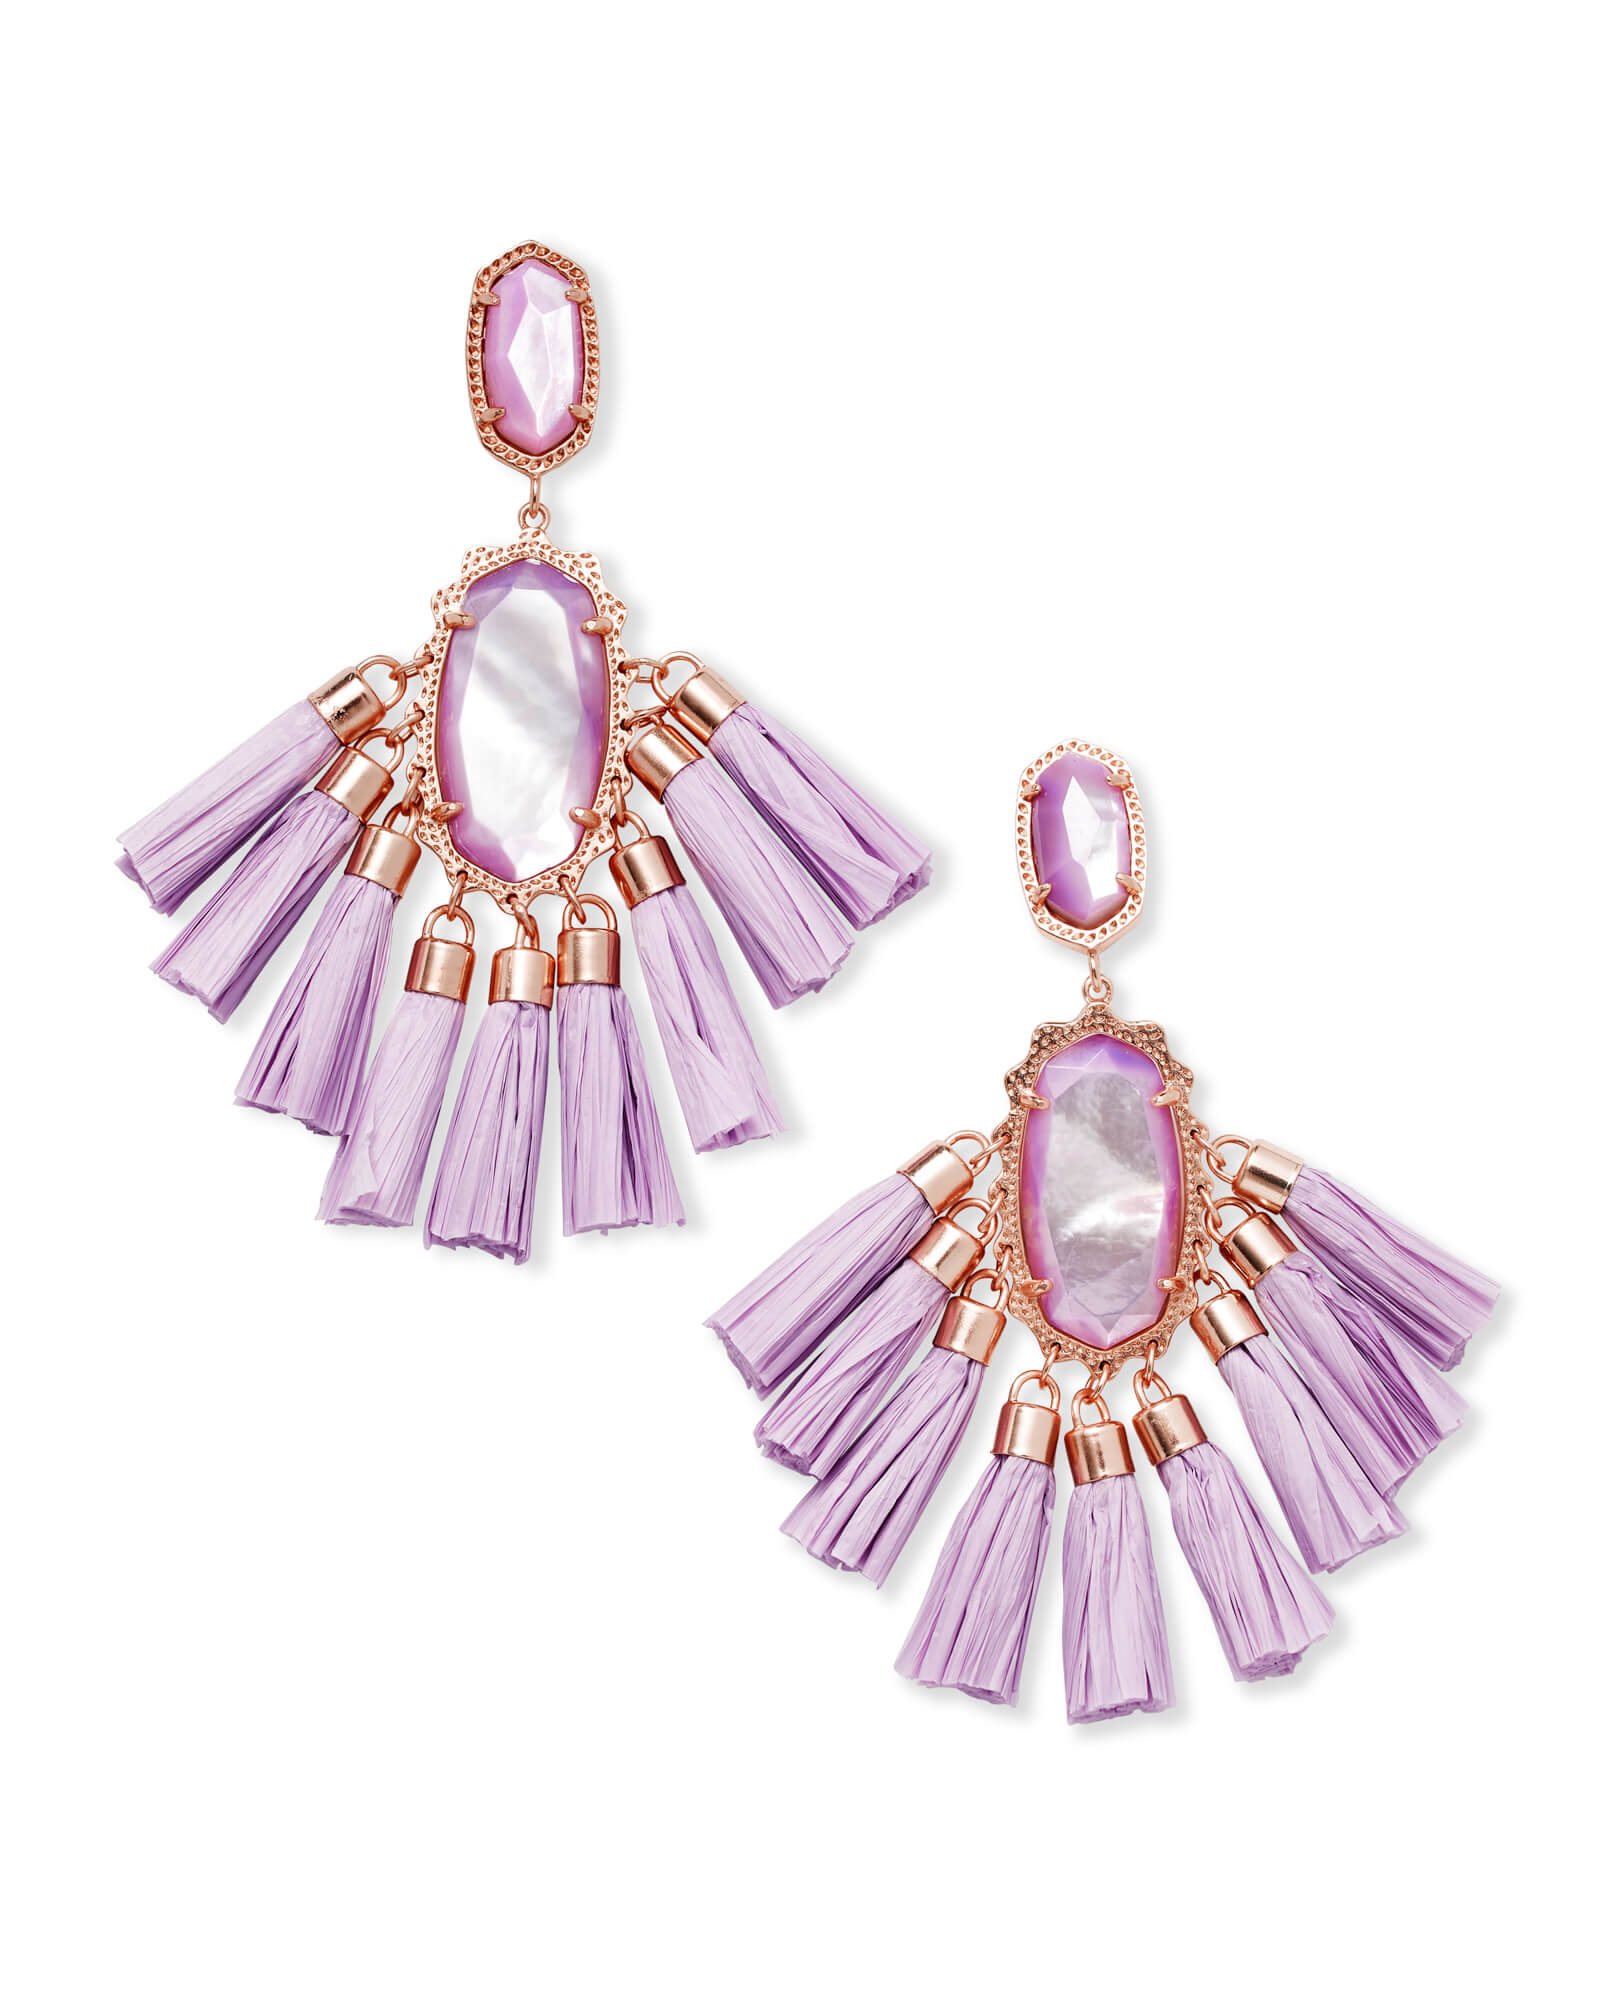 Kristen Rose Gold Statement Earrings In Lilac Mother of Pearl